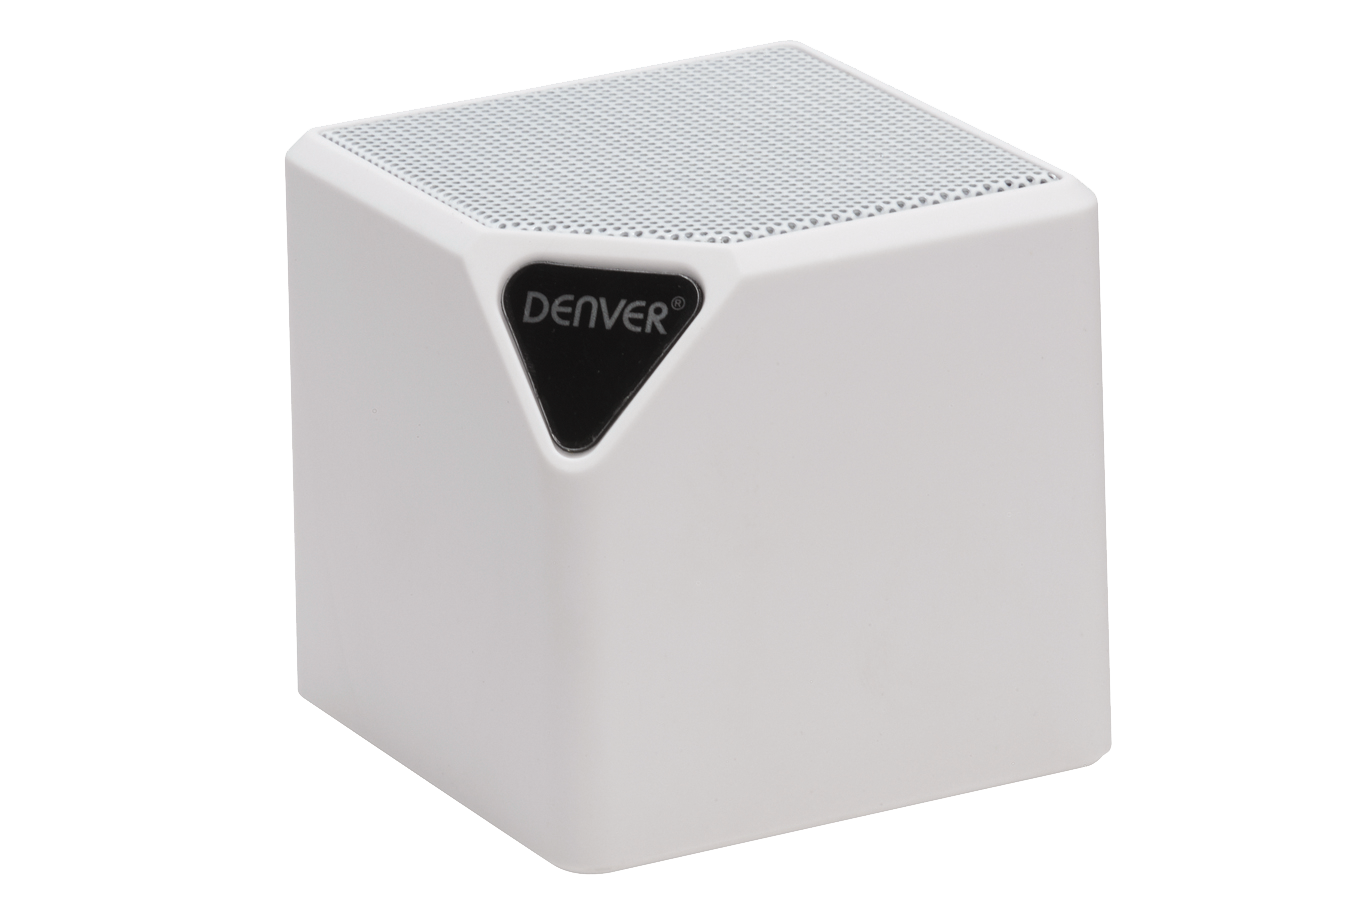 DENVER BTL-31WHITE